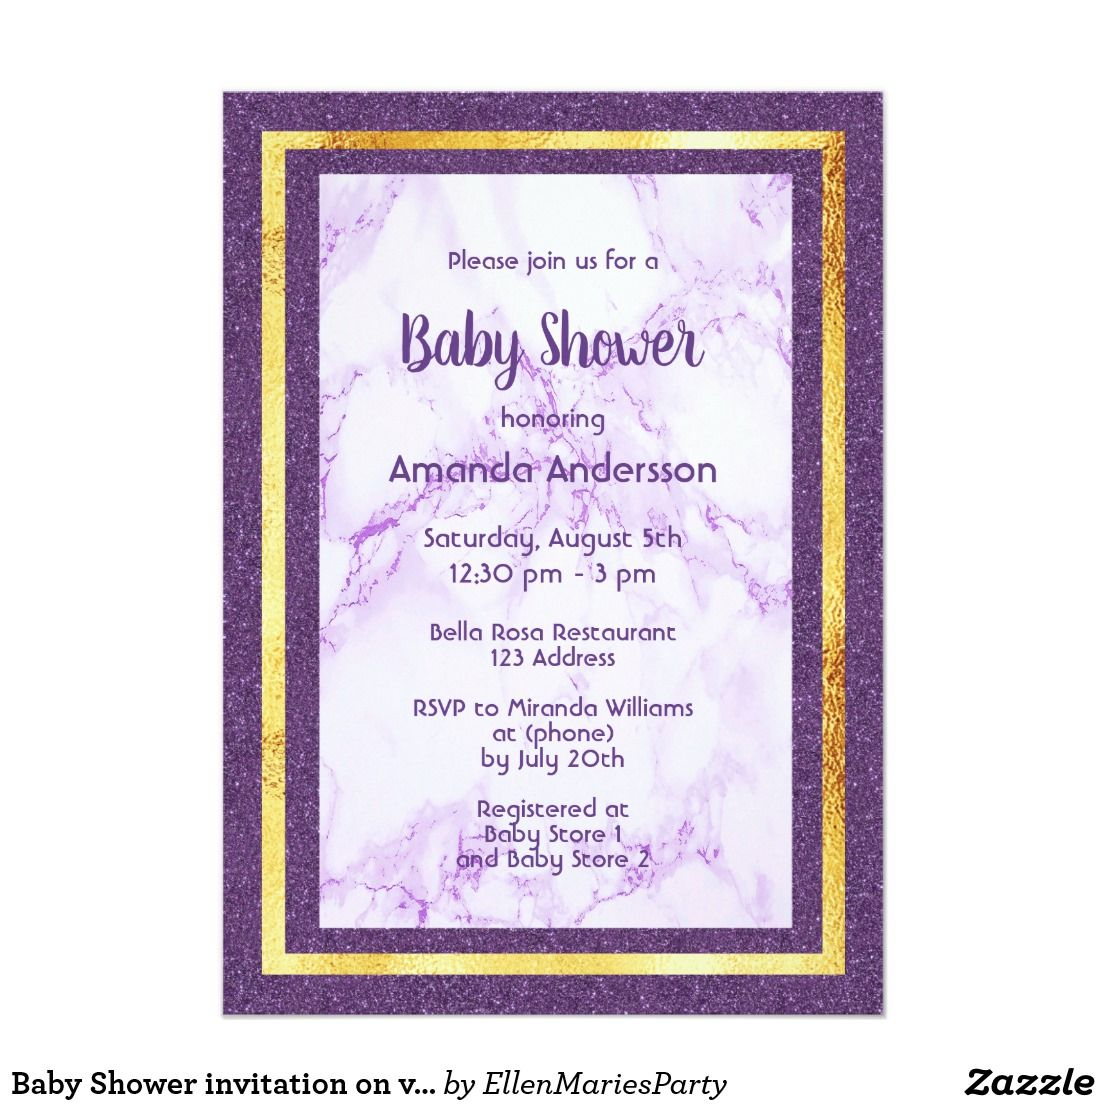 Baby Shower Invitation Letter Mesmerizing Baby Shower Invitation On Violet Marble Glitter  Elegant .